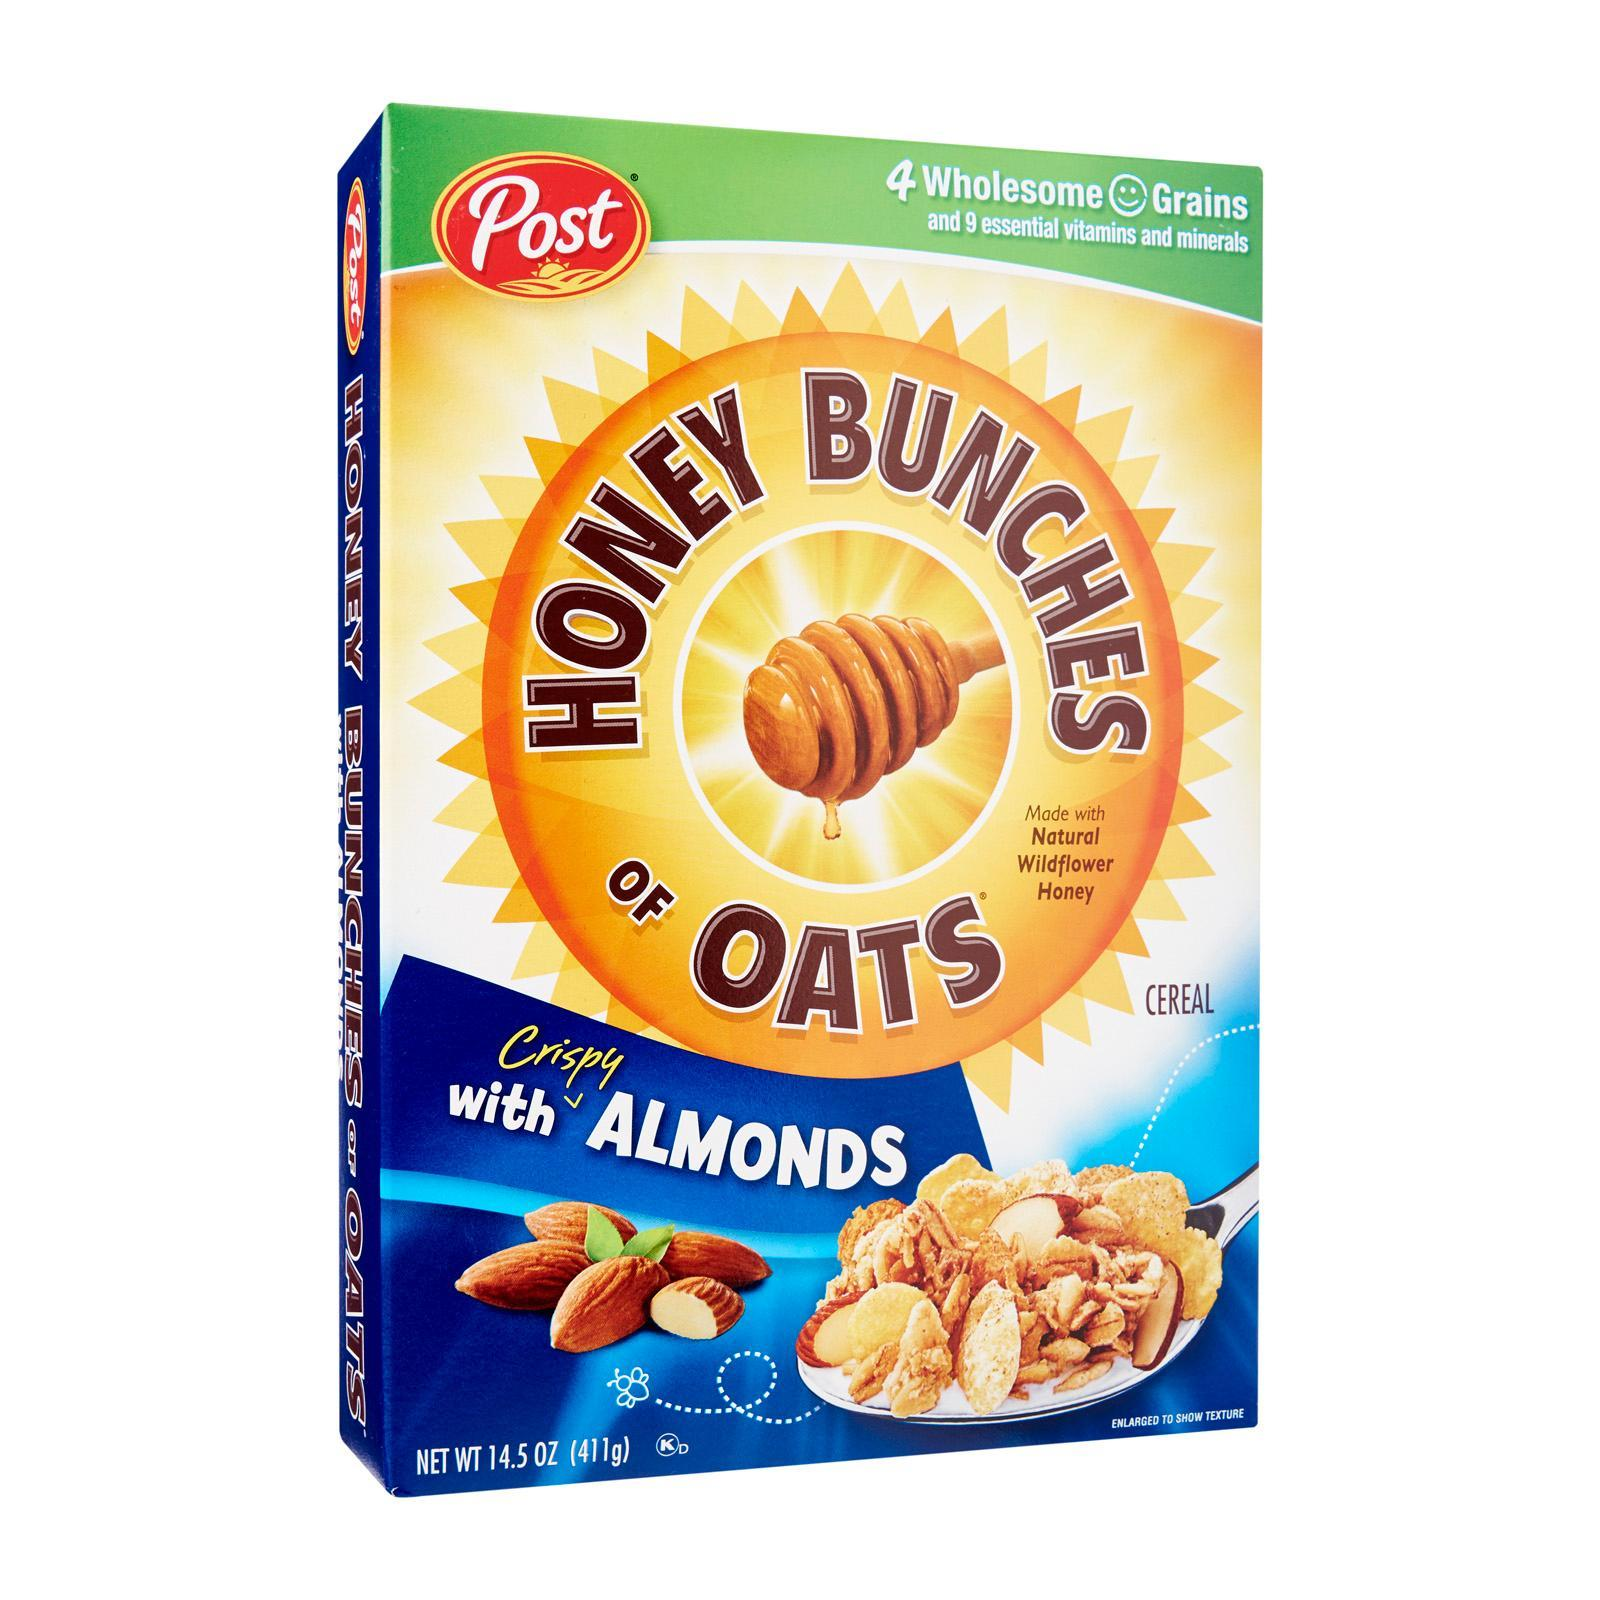 Post Honey Bunches of Oats with Almonds Whole Grain Cereal